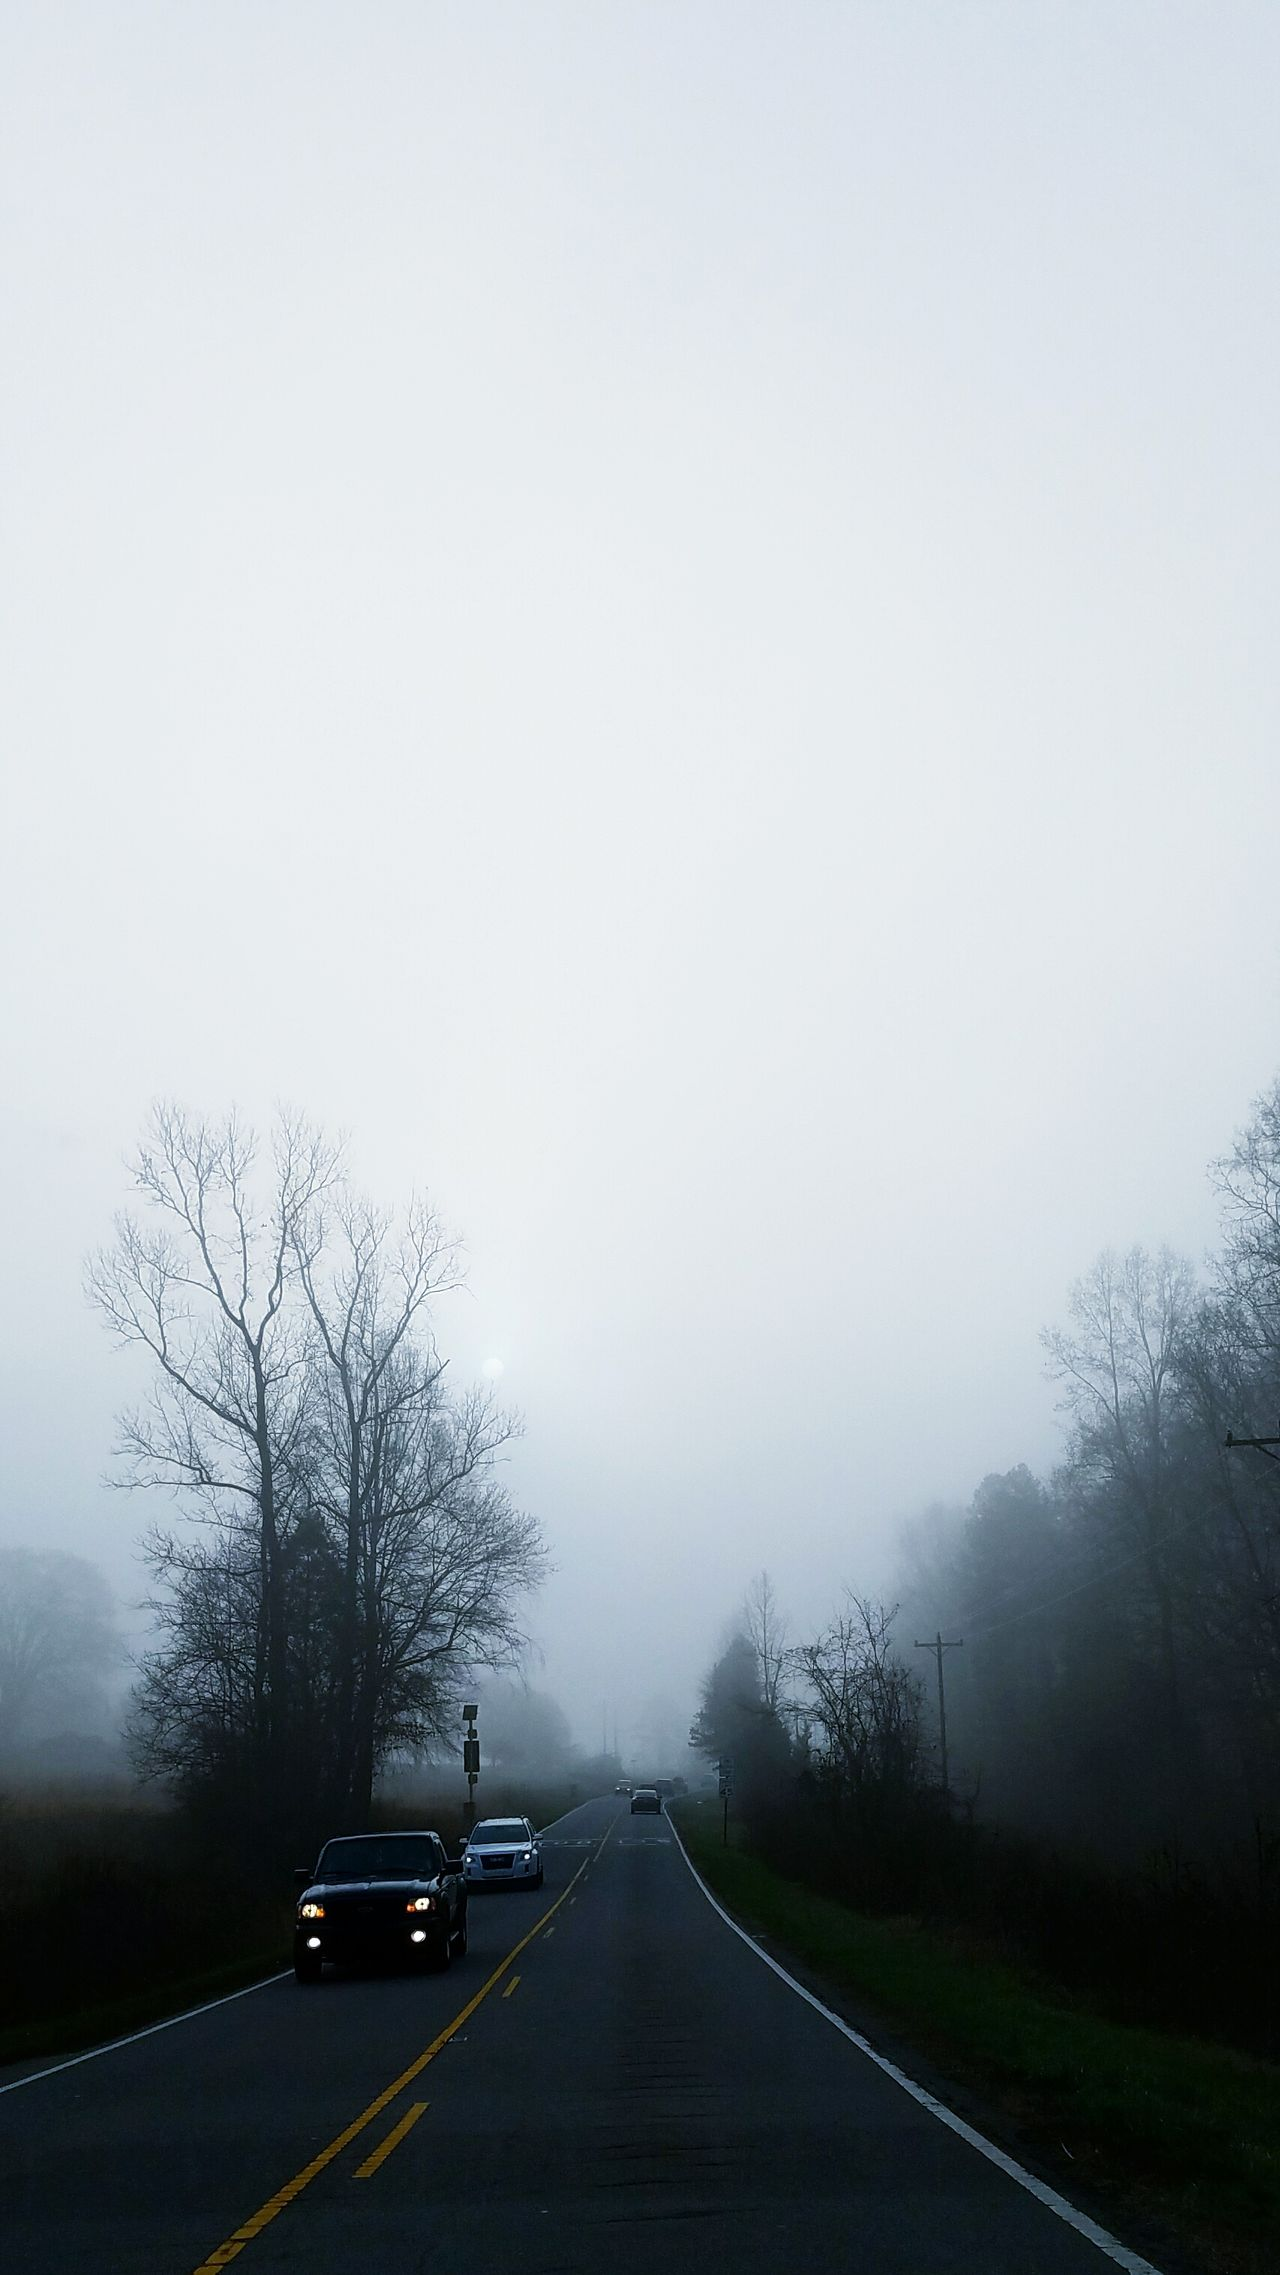 Sun & Fog Sun Fog Foggy Foggy Morning Weather Road NC Beauty In Nature Background Backgrounds Full Frame The Way Forward Trees Road Tree No People Outdoors Branches And Sky Branches Country Road Headlights Cars Drive Lookahead Forward